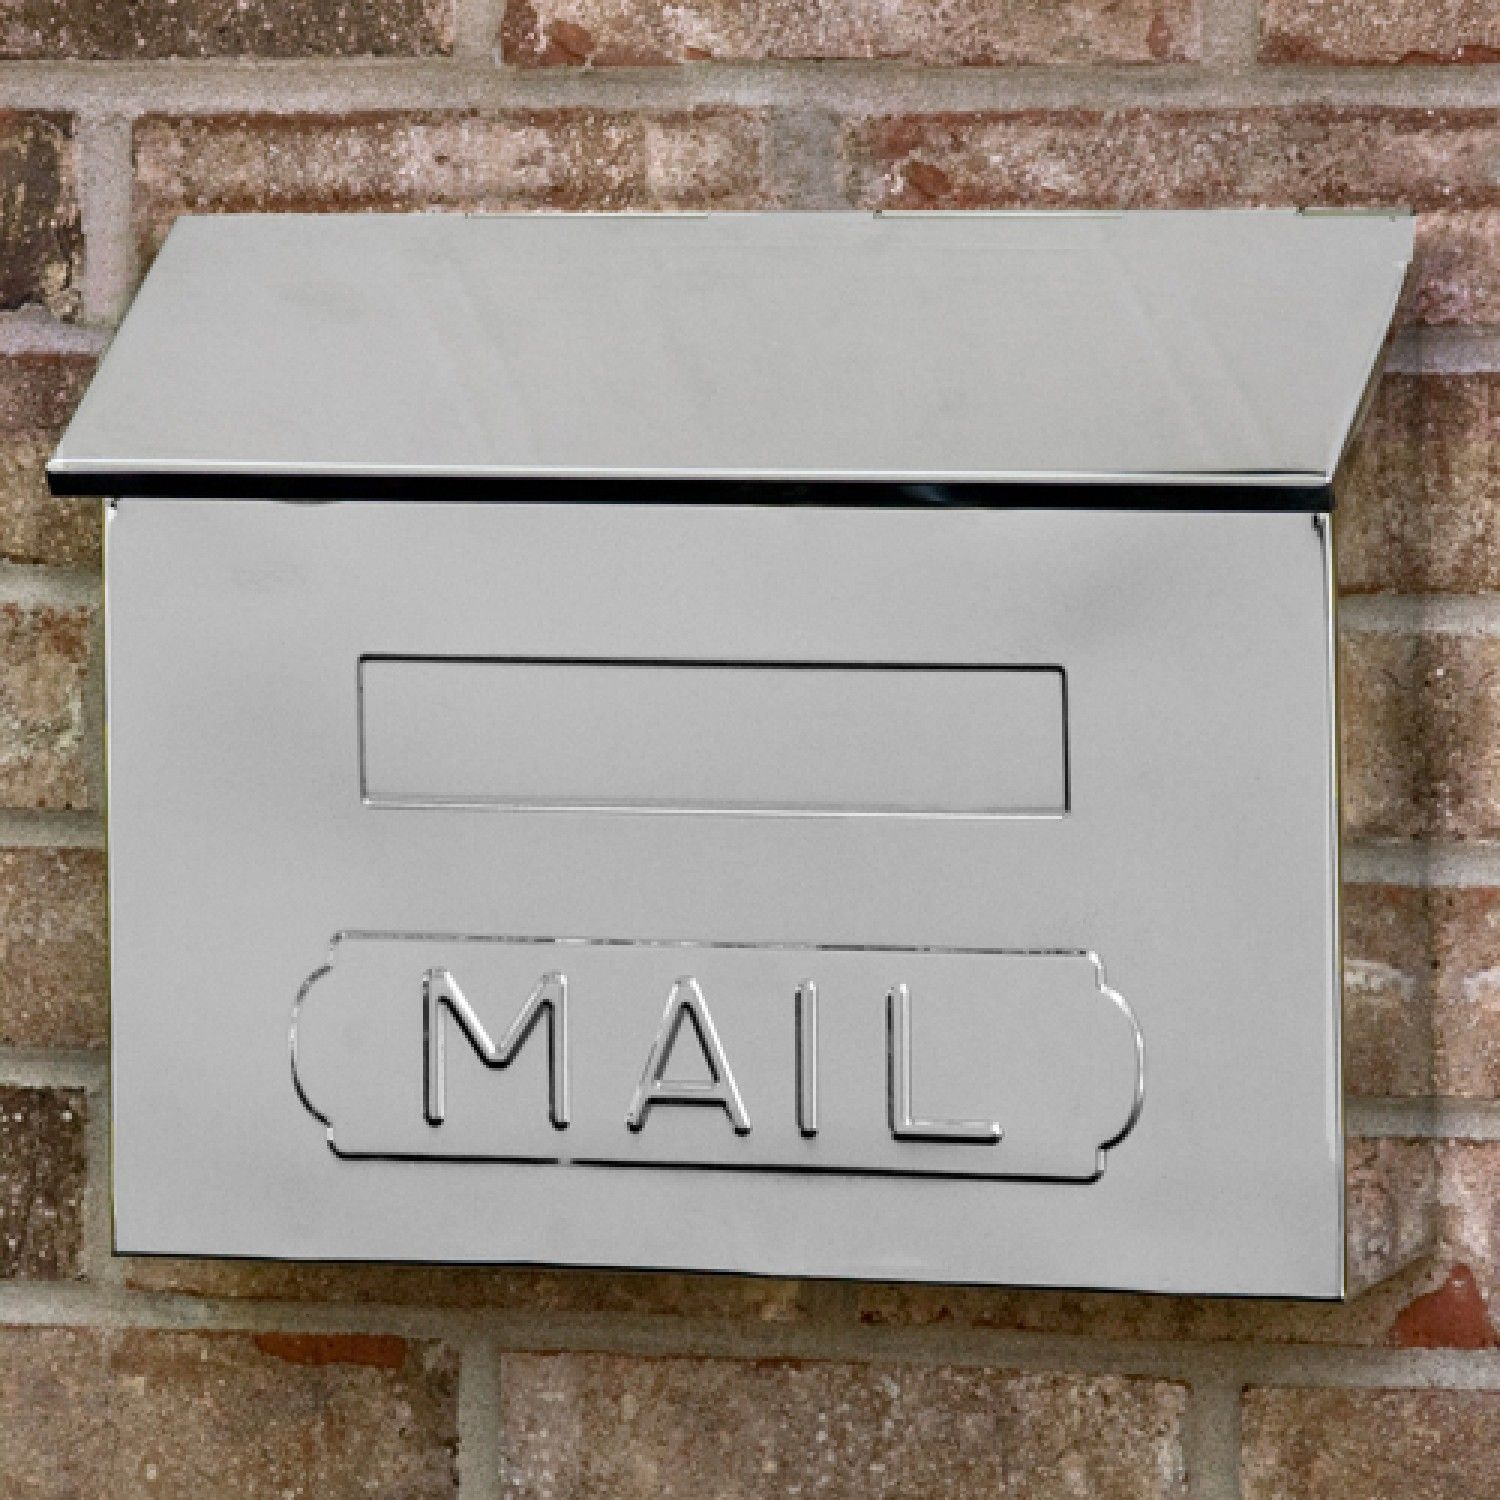 Horizontal Mail Wall Mount Mailbox Polished Stainless Steel Mailboxes And Slots Outdoor Wall Mount Mailbox Mounted Mailbox Stainless Steel Mailbox